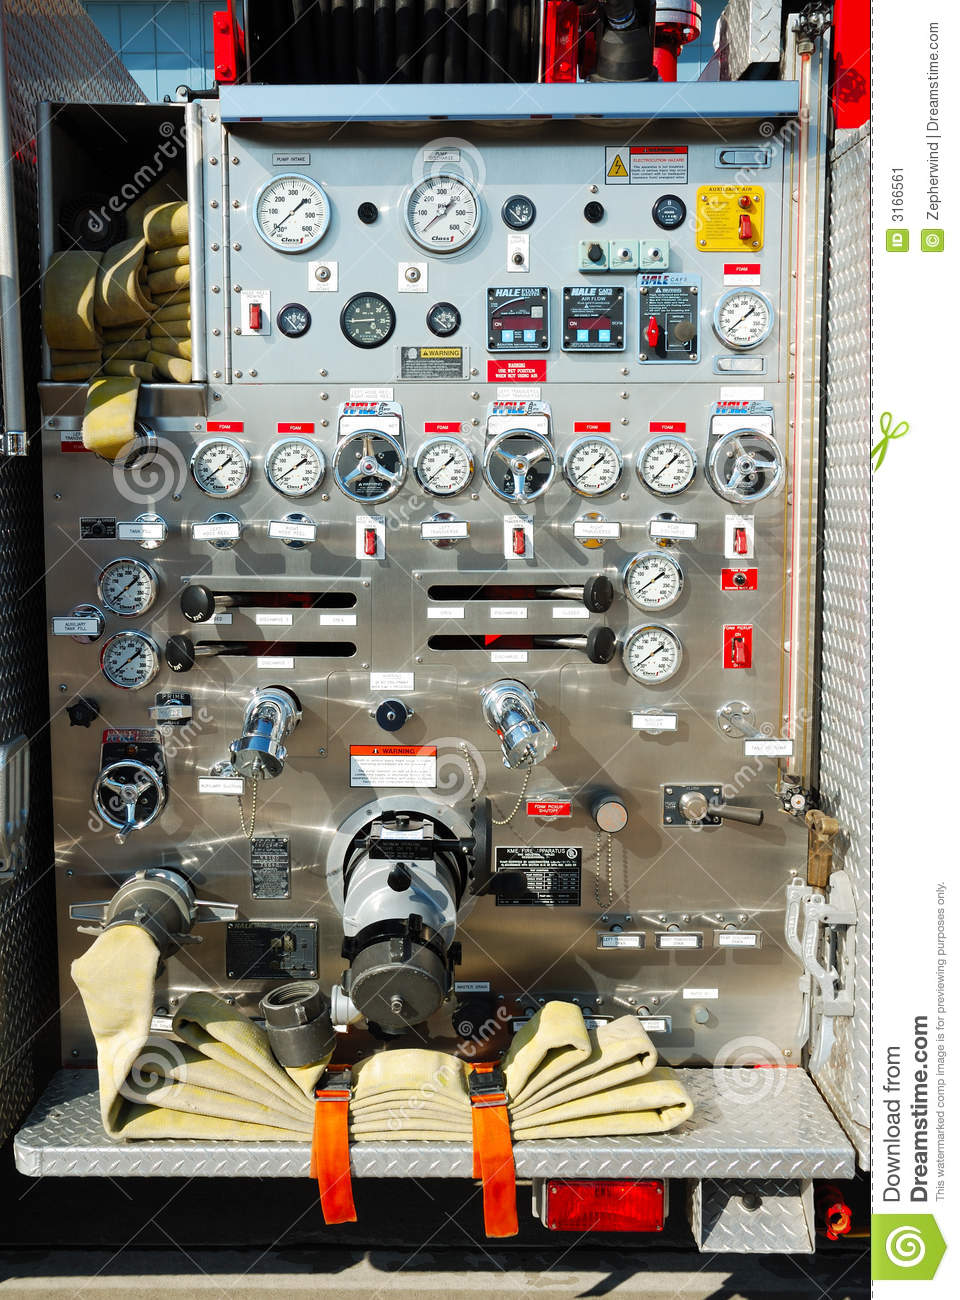 Fire Truck Control Panel Stock Image Image 3166561